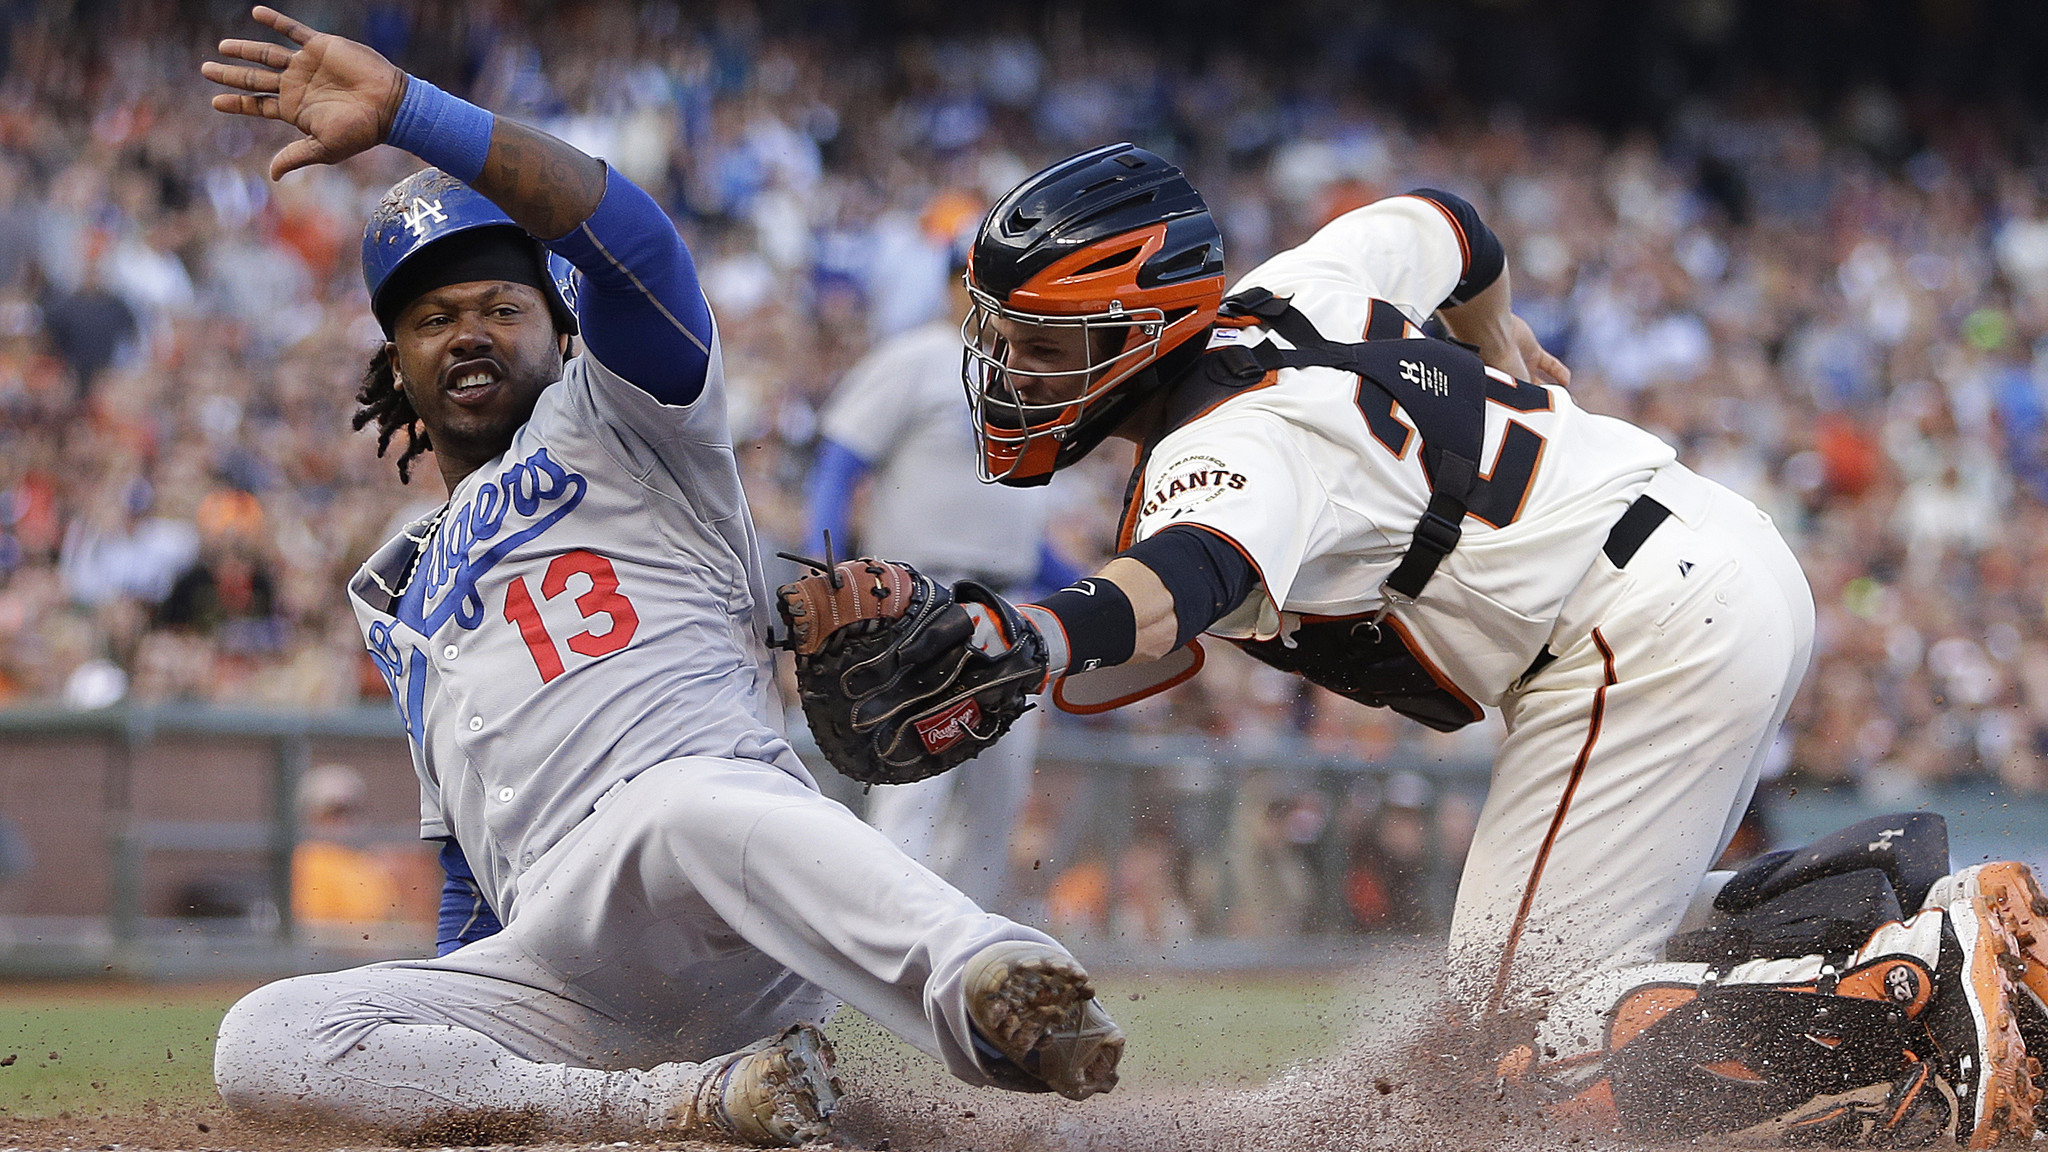 Dodgers have a weekend to remember, sweeping Giants with 4-3 win